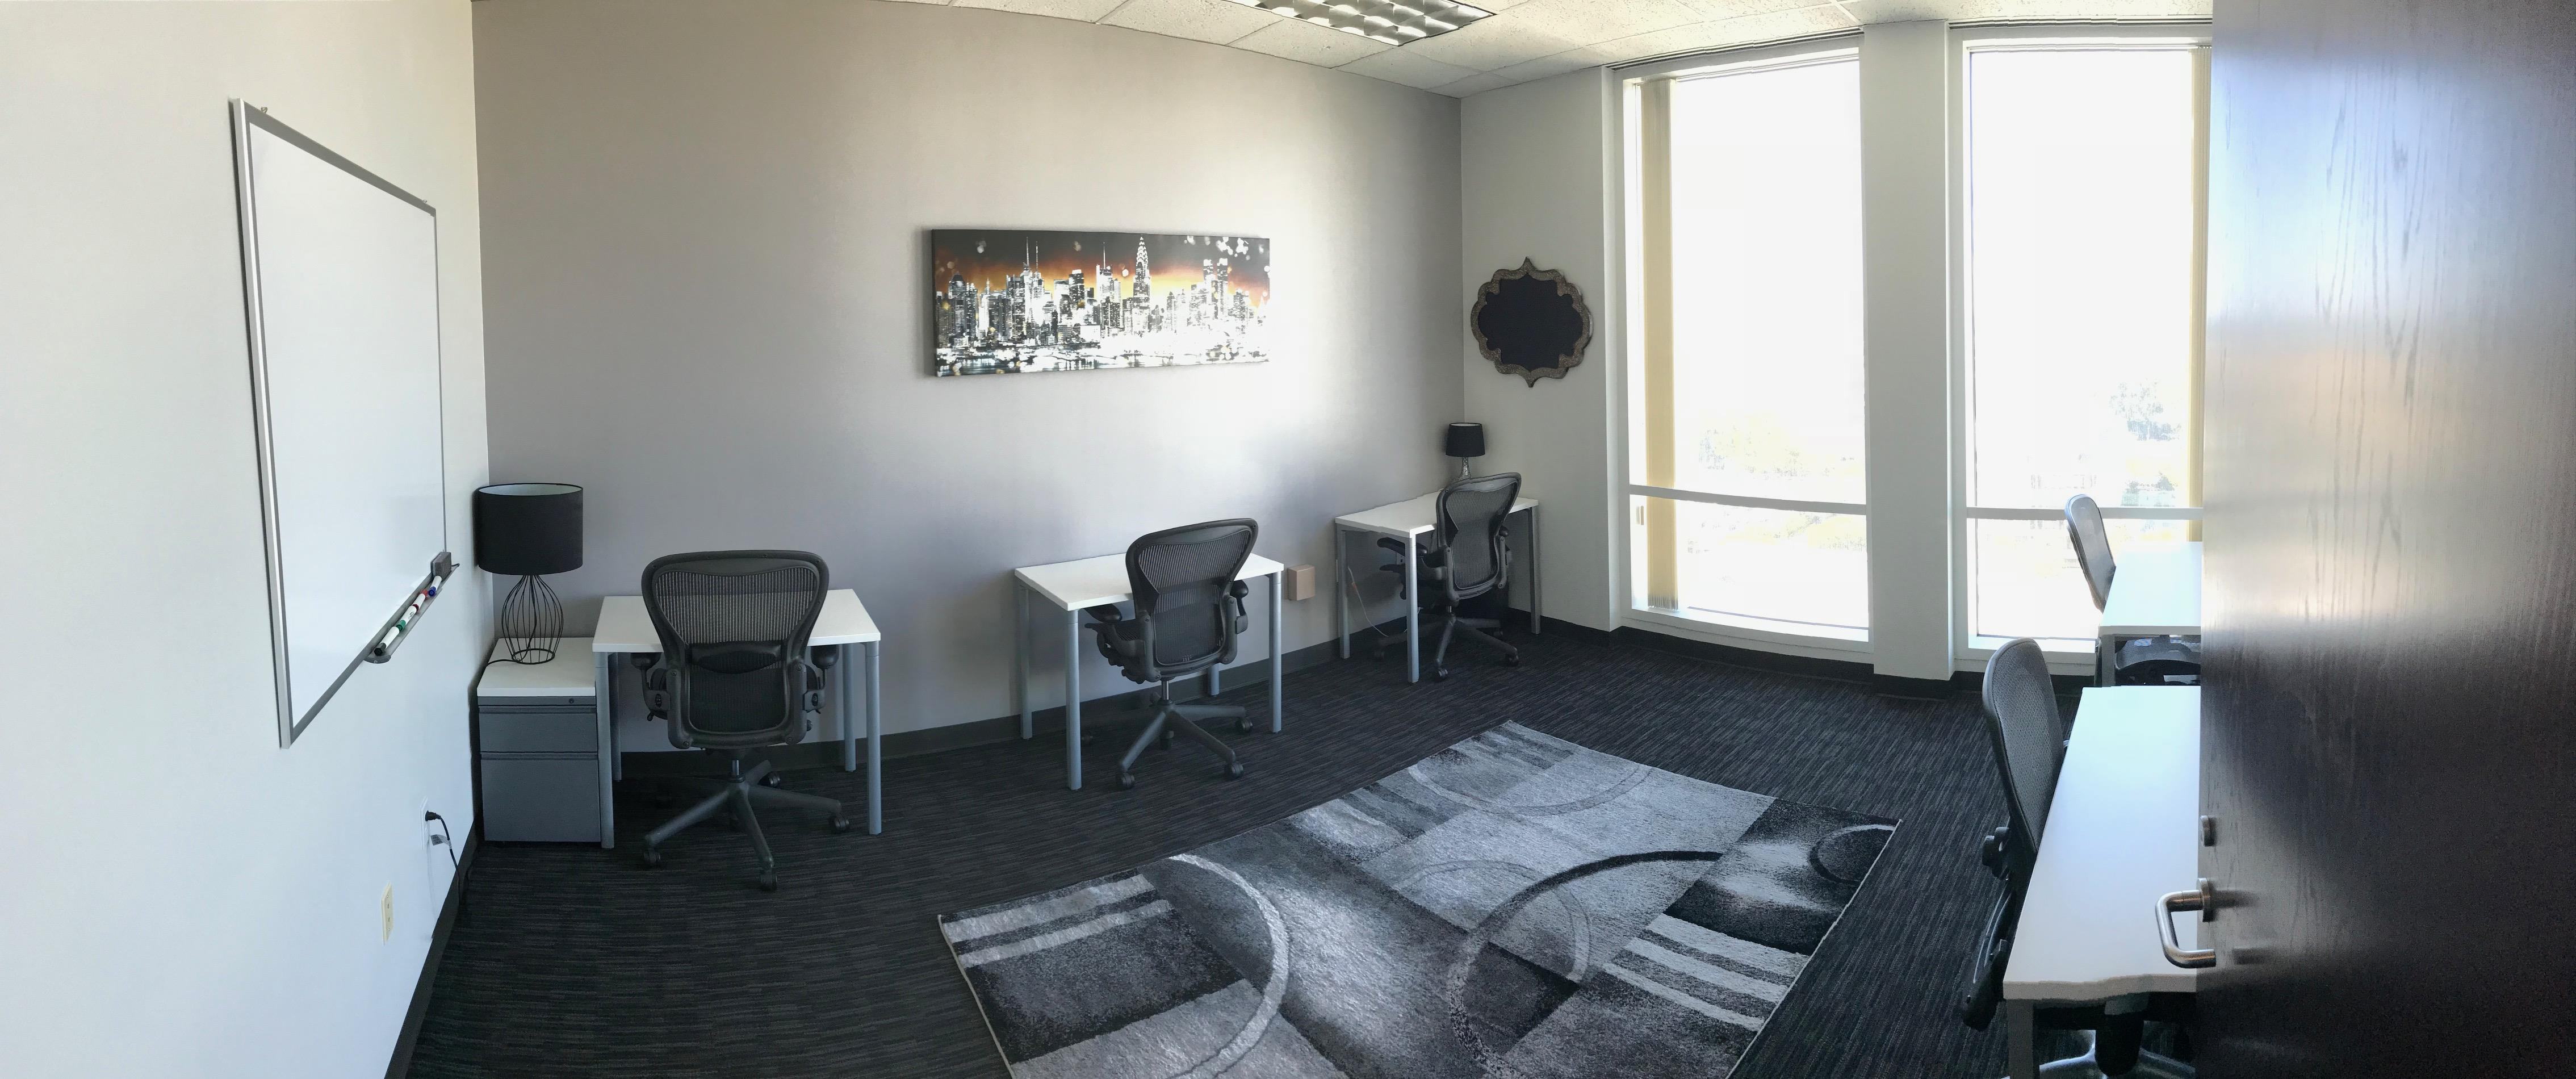 Regus- 9th Street - Contiguous Offices 14, 15, 16 for 14 ppl